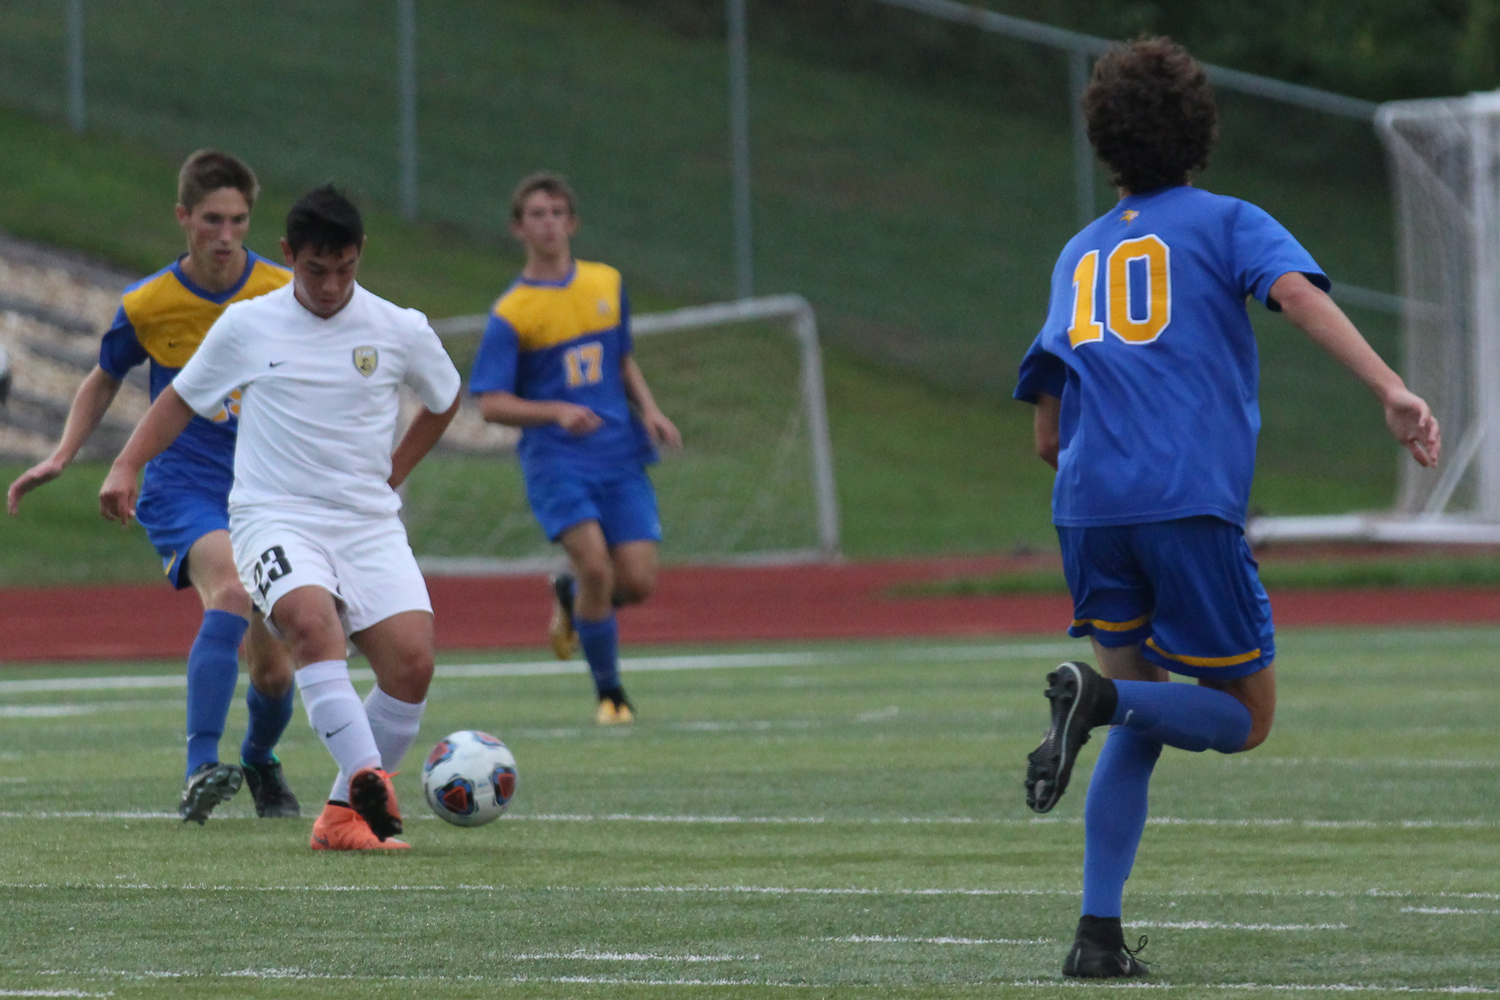 Mateo Morales works to keep the ball away from the Howell defender.